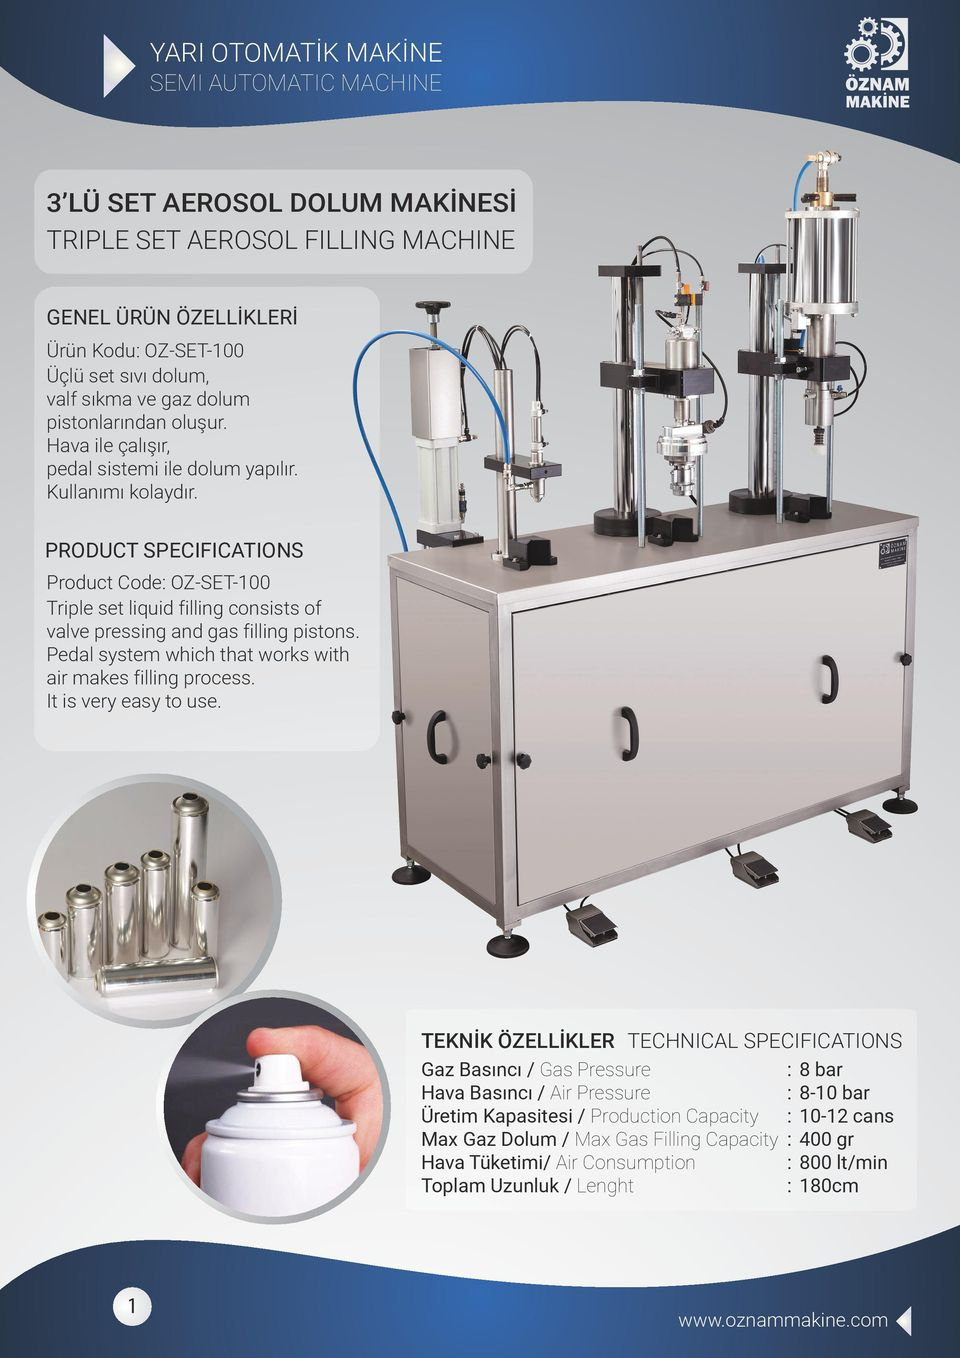 Product Code OZ-SET-100 Triple set liquid filling consists of valve pressing and gas filling pistons. Pedal system which that works with air makes filling process.